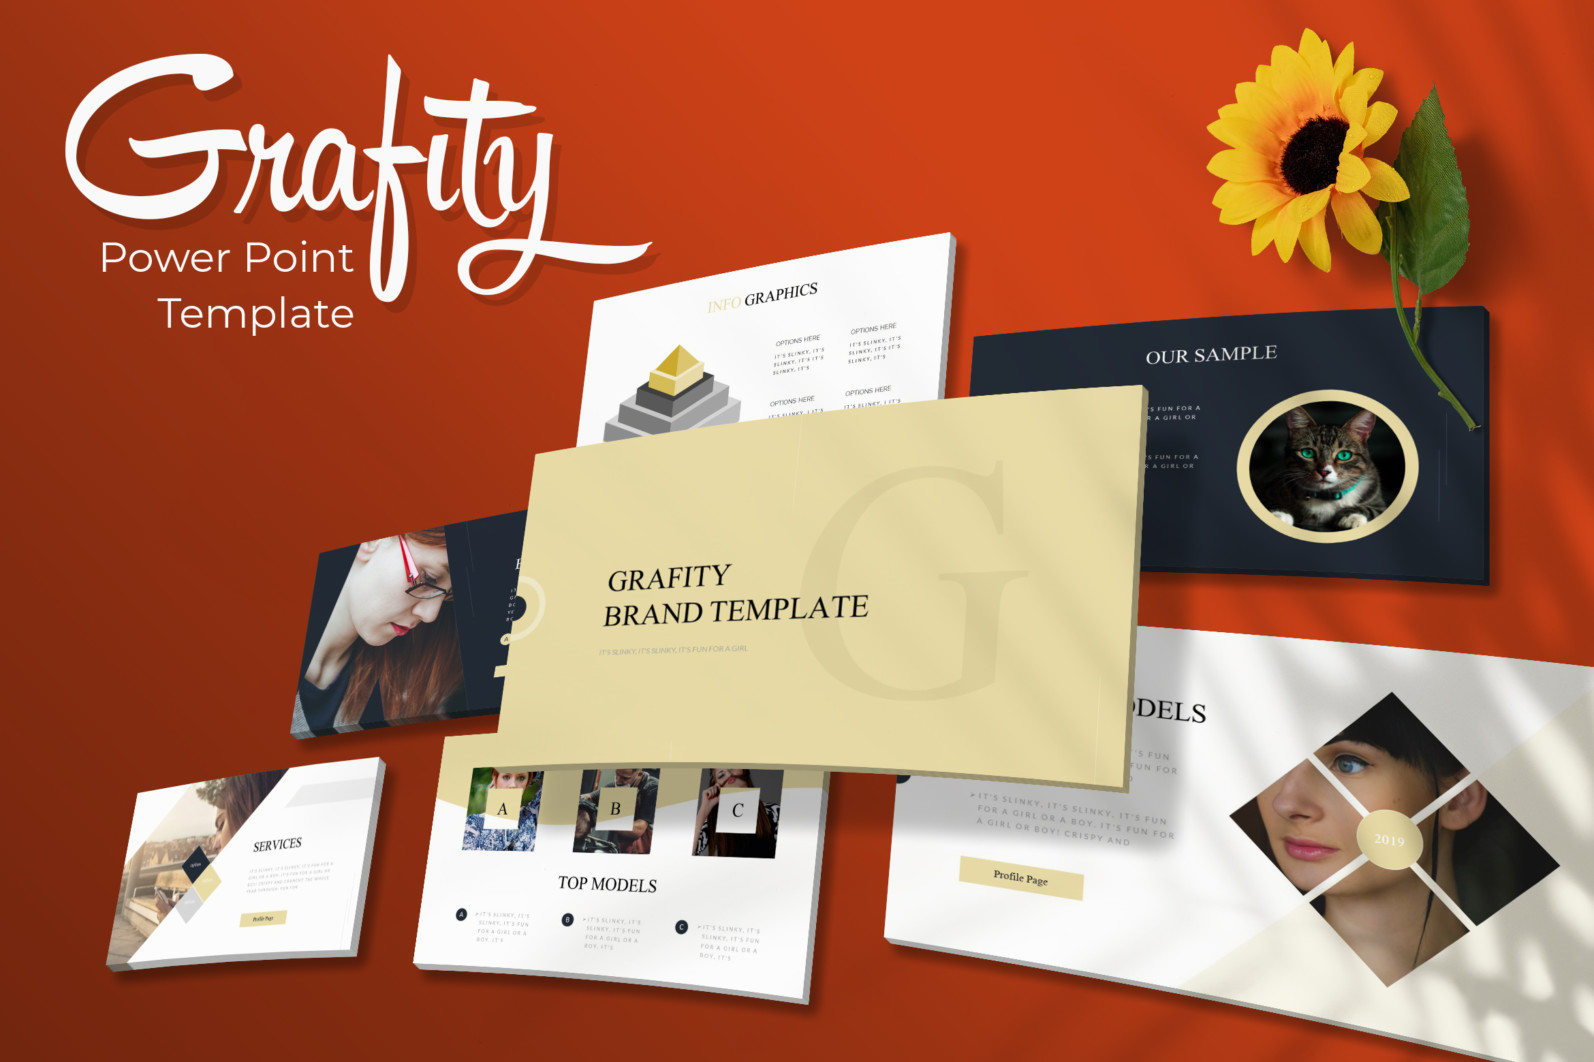 Grafity Power Point Template - Grafity Powerpoint Template -